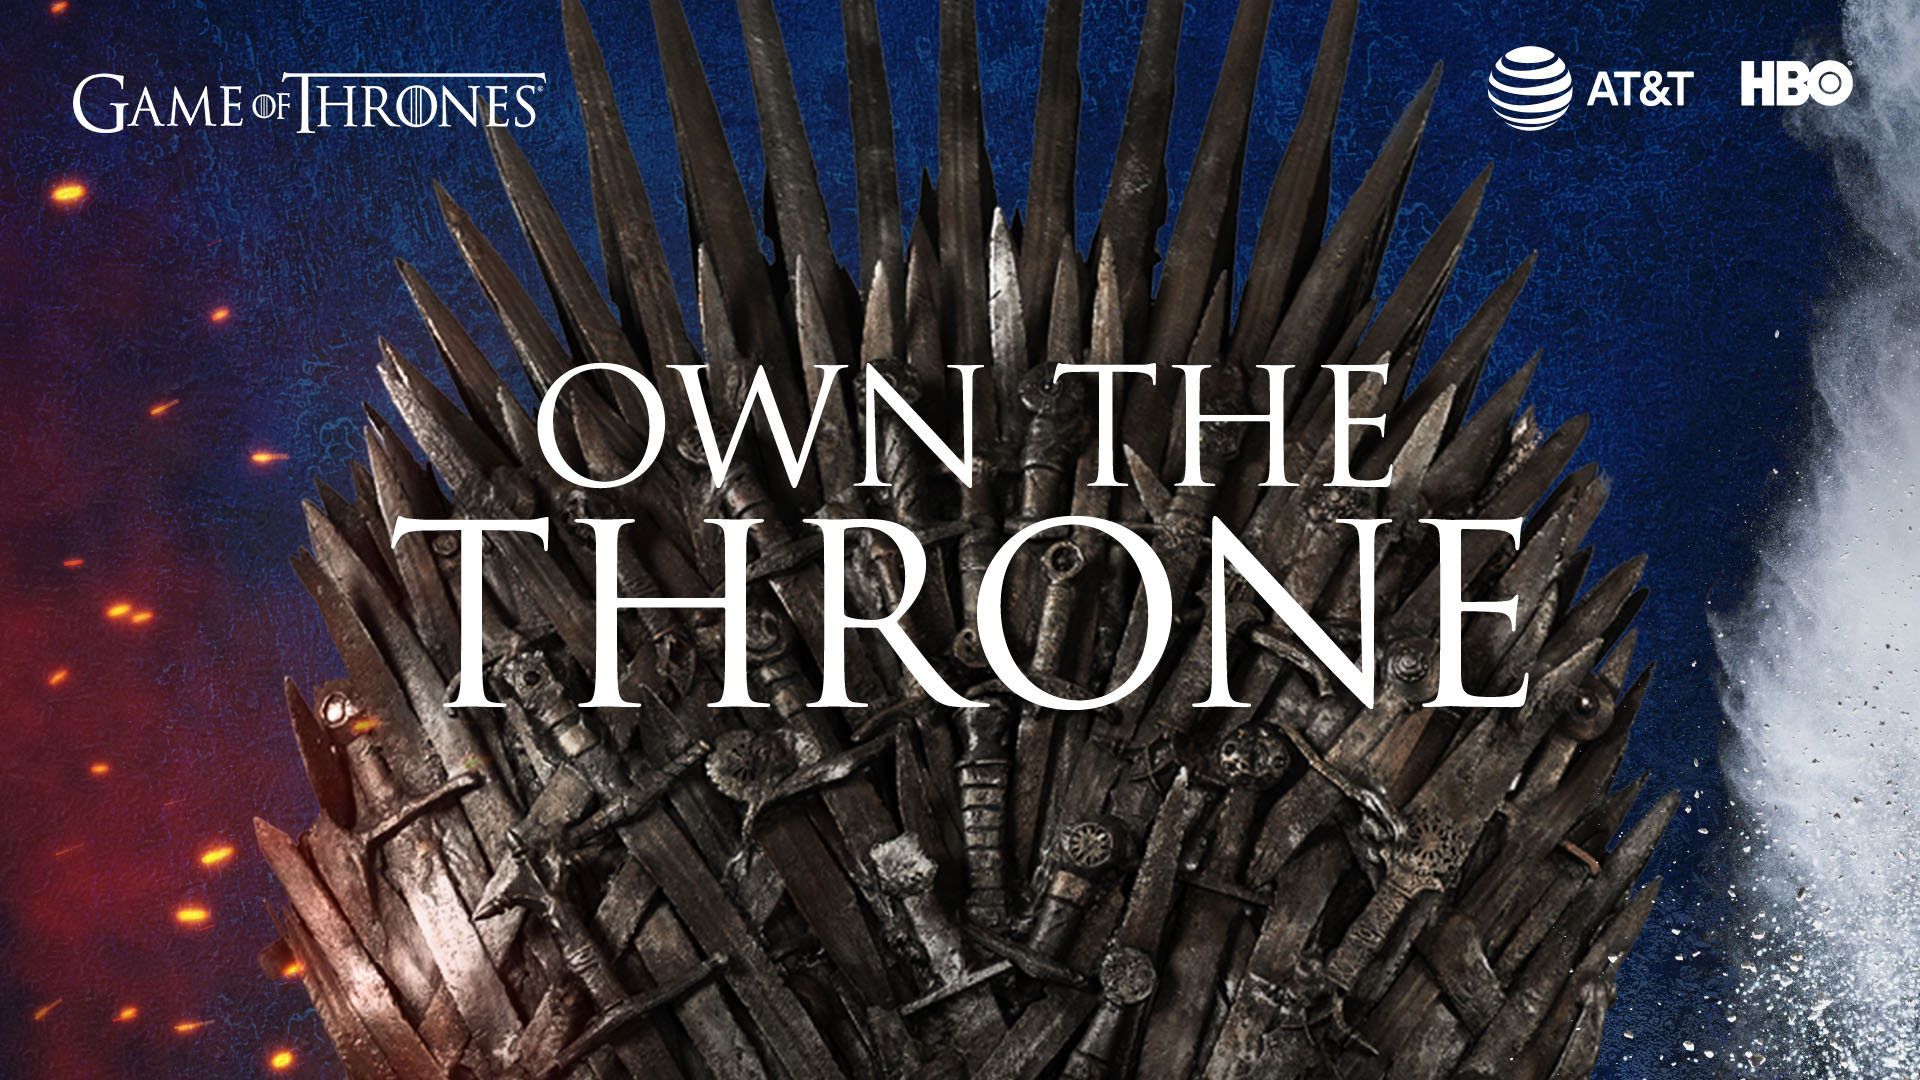 GAME OF THRONES | OWN THE THRONE